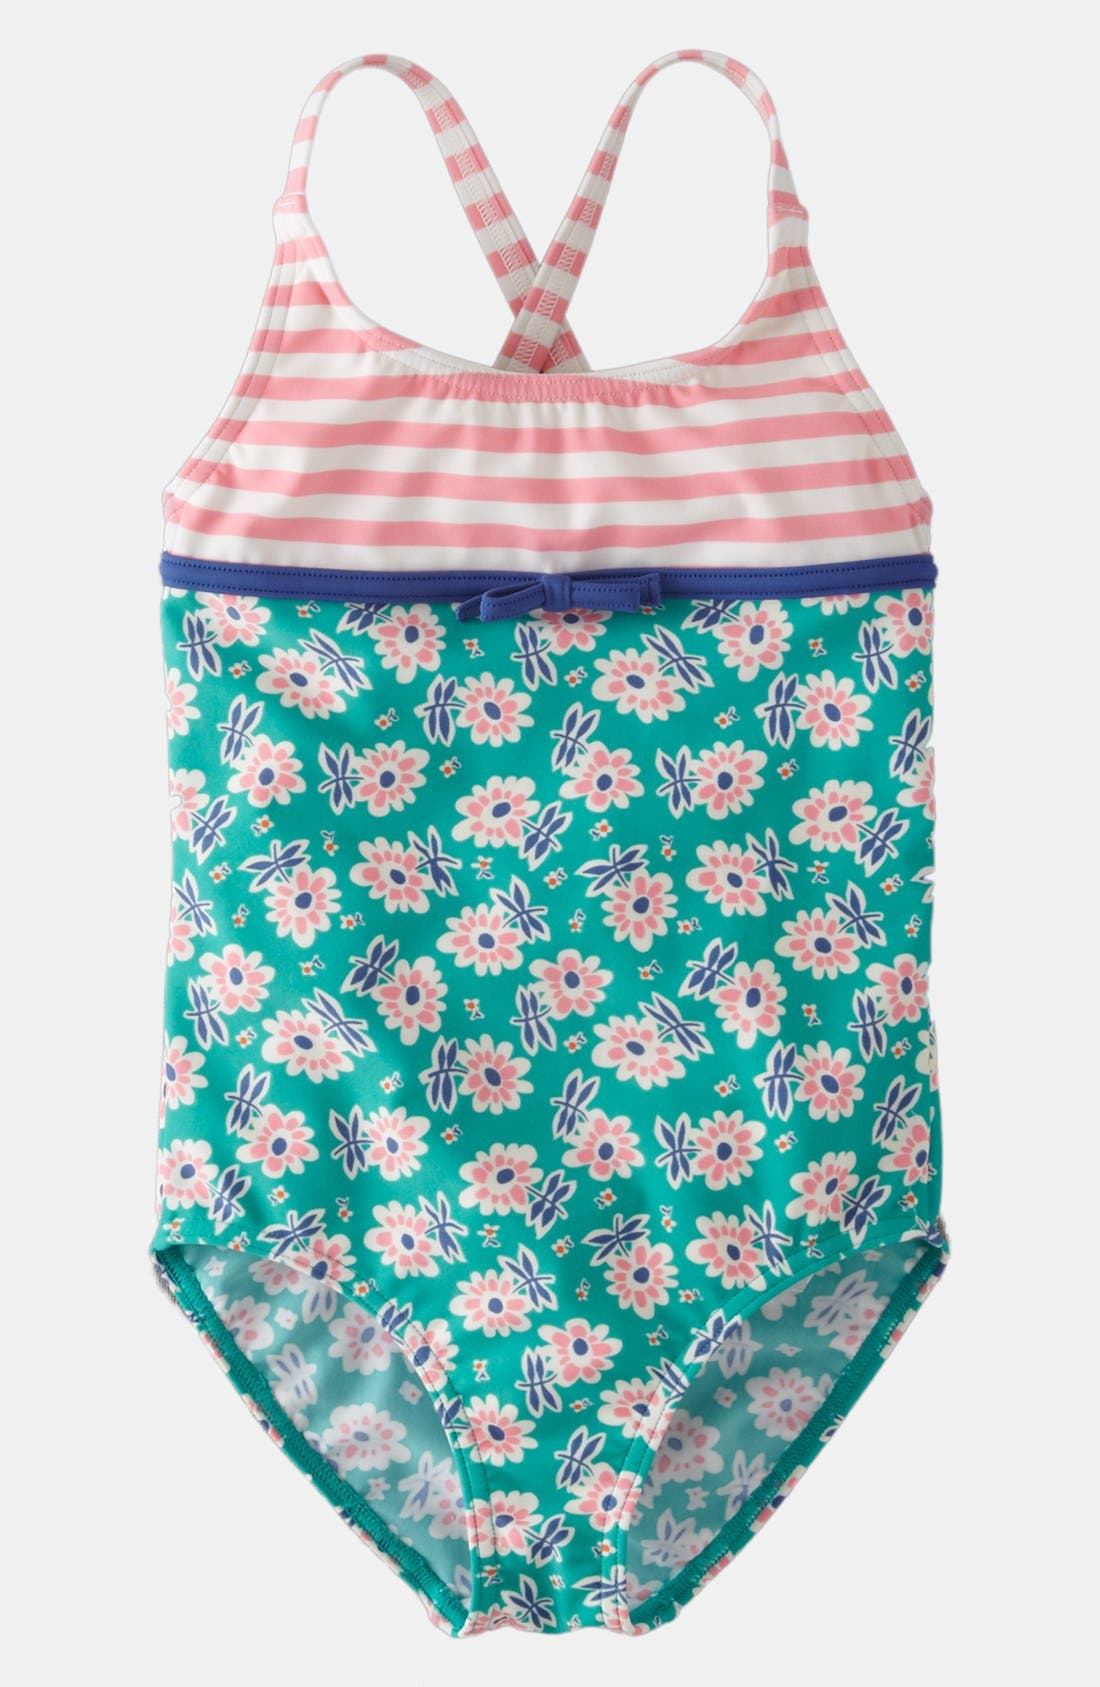 Alternate Image 1 Selected - Mini Boden 'Hotchpotch' One Piece Swimsuit (Toddler)